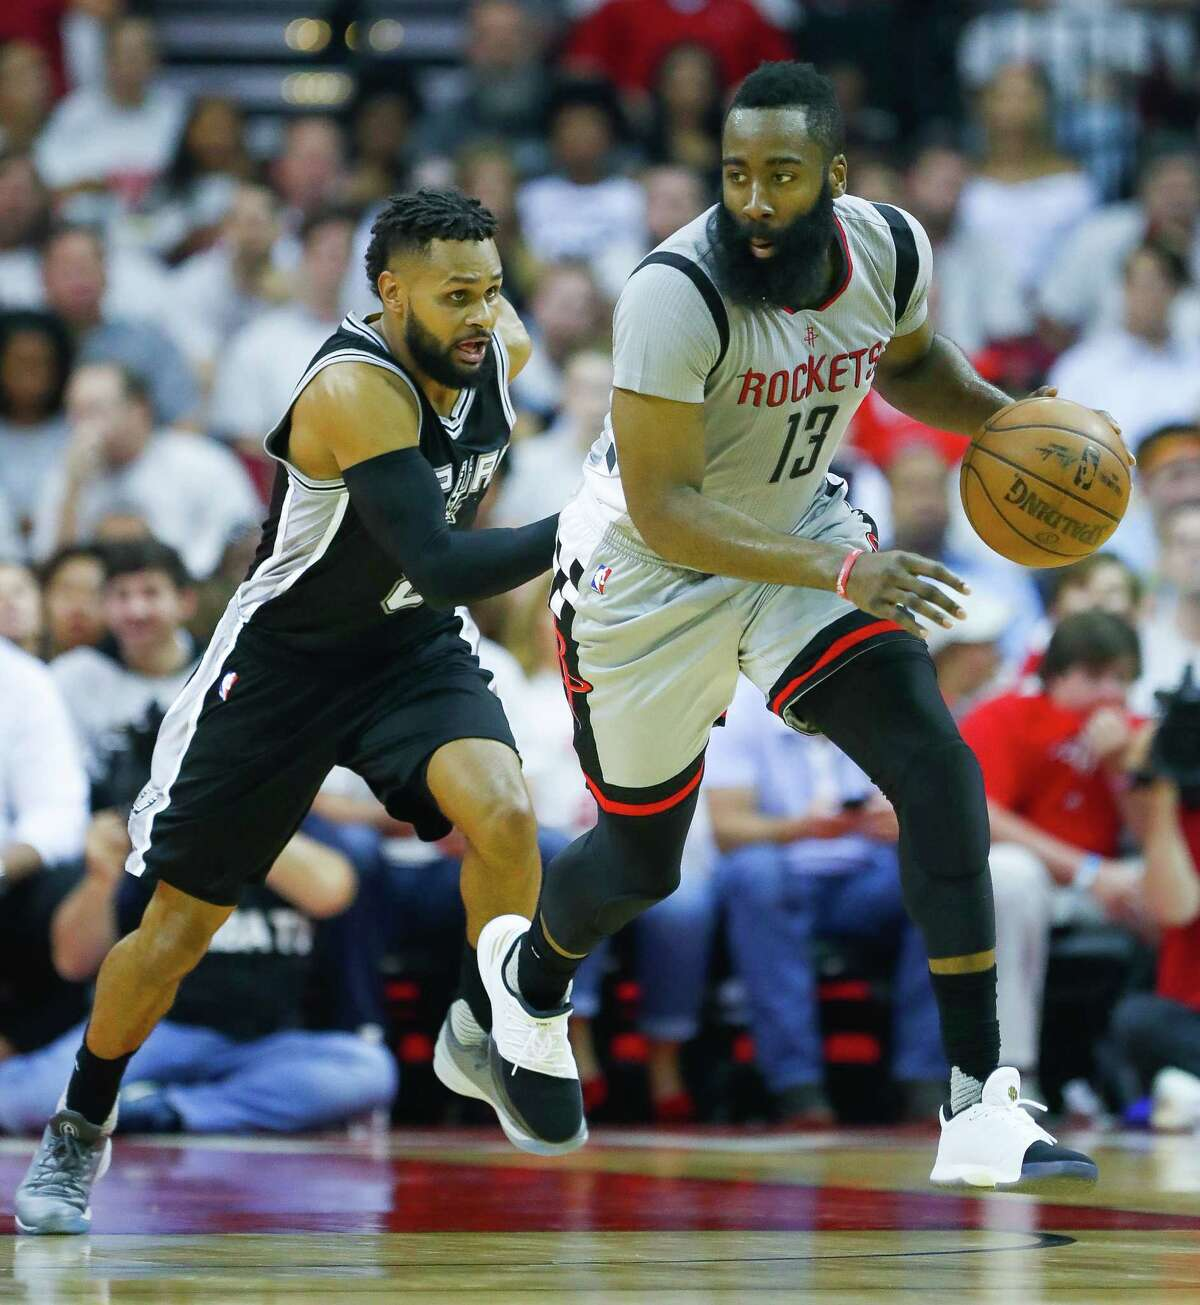 Houston Rockets guard James Harden (13) is pursued by San Antonio Spurs guard Patty Mills (8) during the first half of Game 3 of the second round of the Western Conference NBA playoffs at the Toyota Center, Sunday, May 7, 2017, in Houston. ( Karen Warren / Houston Chronicle )